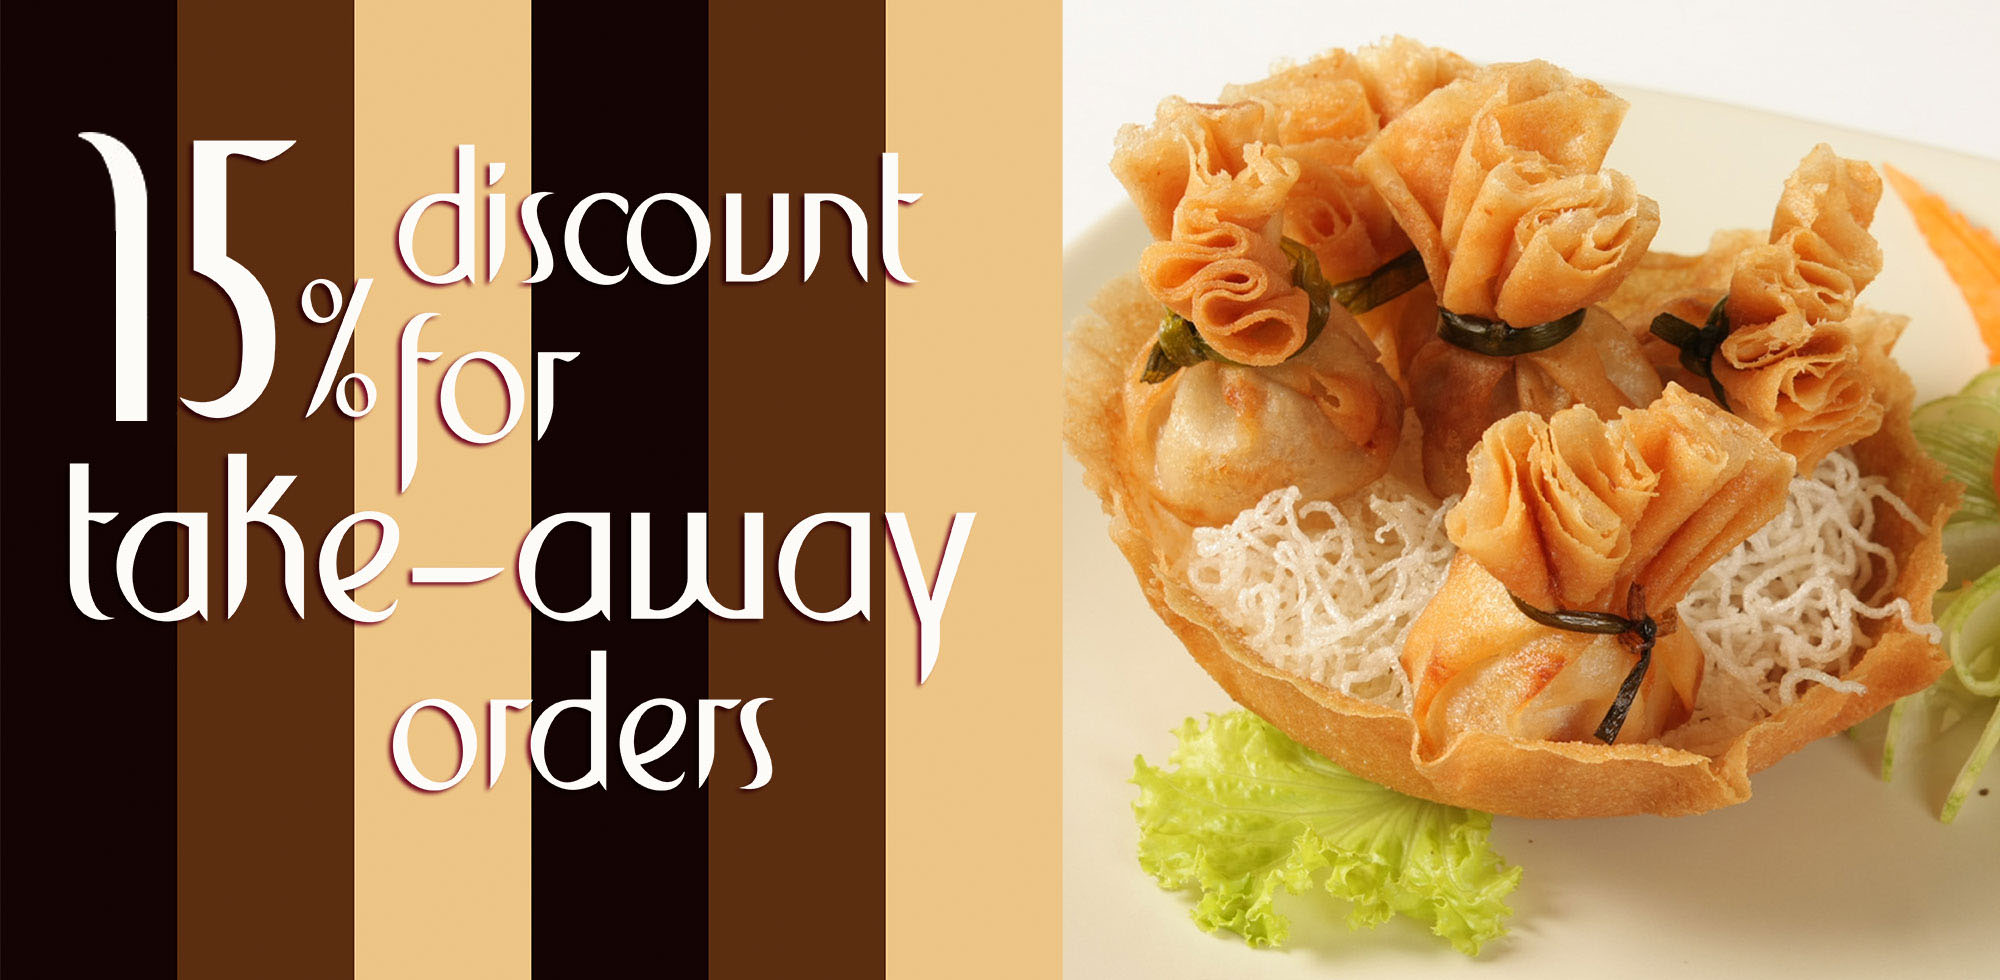 Thai Meal discount in bradford